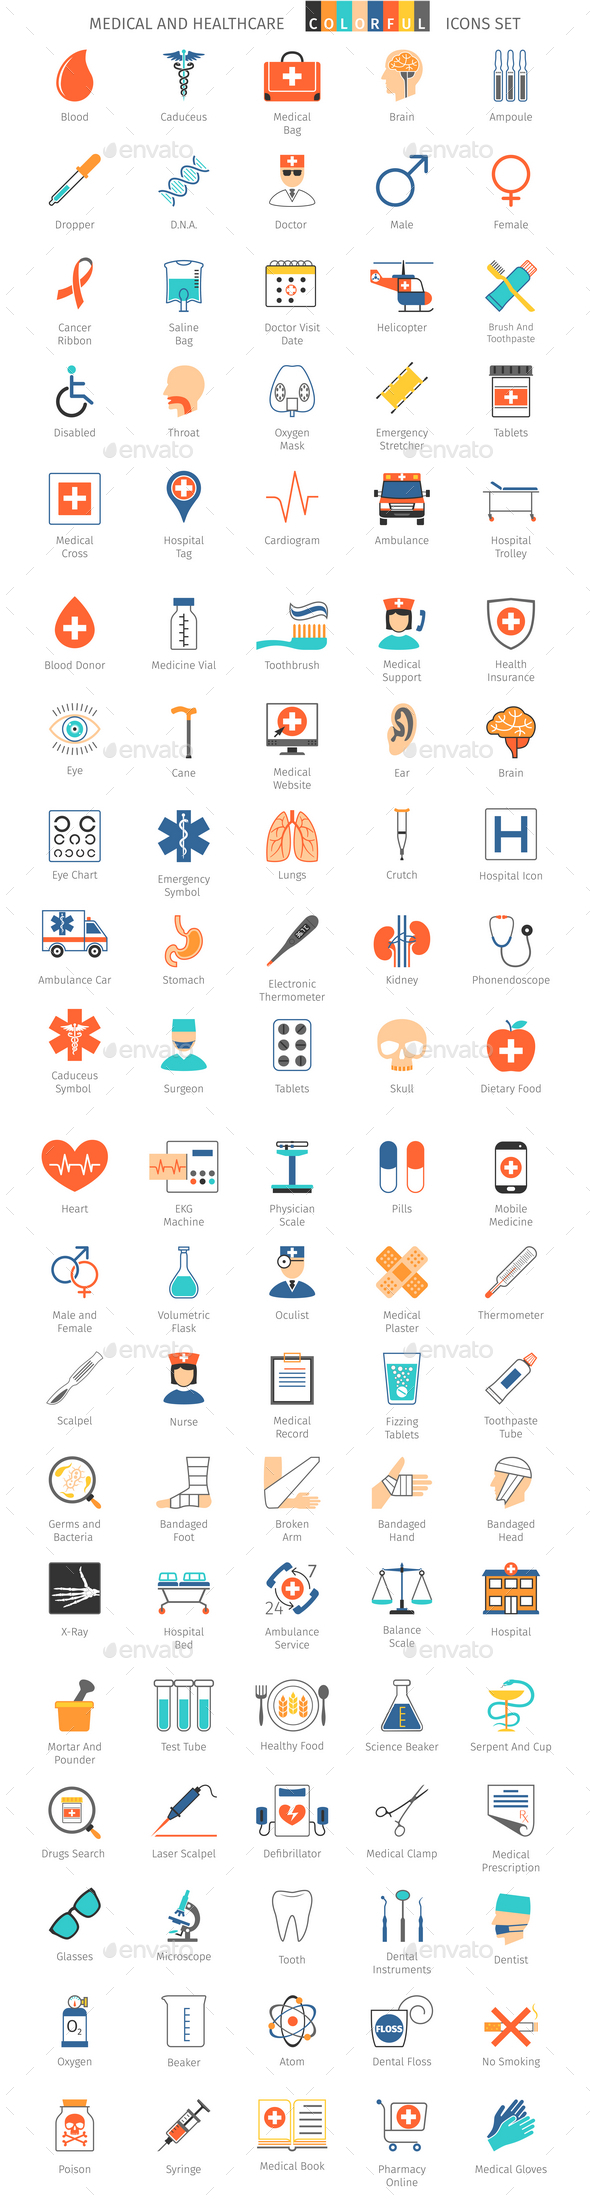 Medical And Healthcare Colorful Icons - Icons